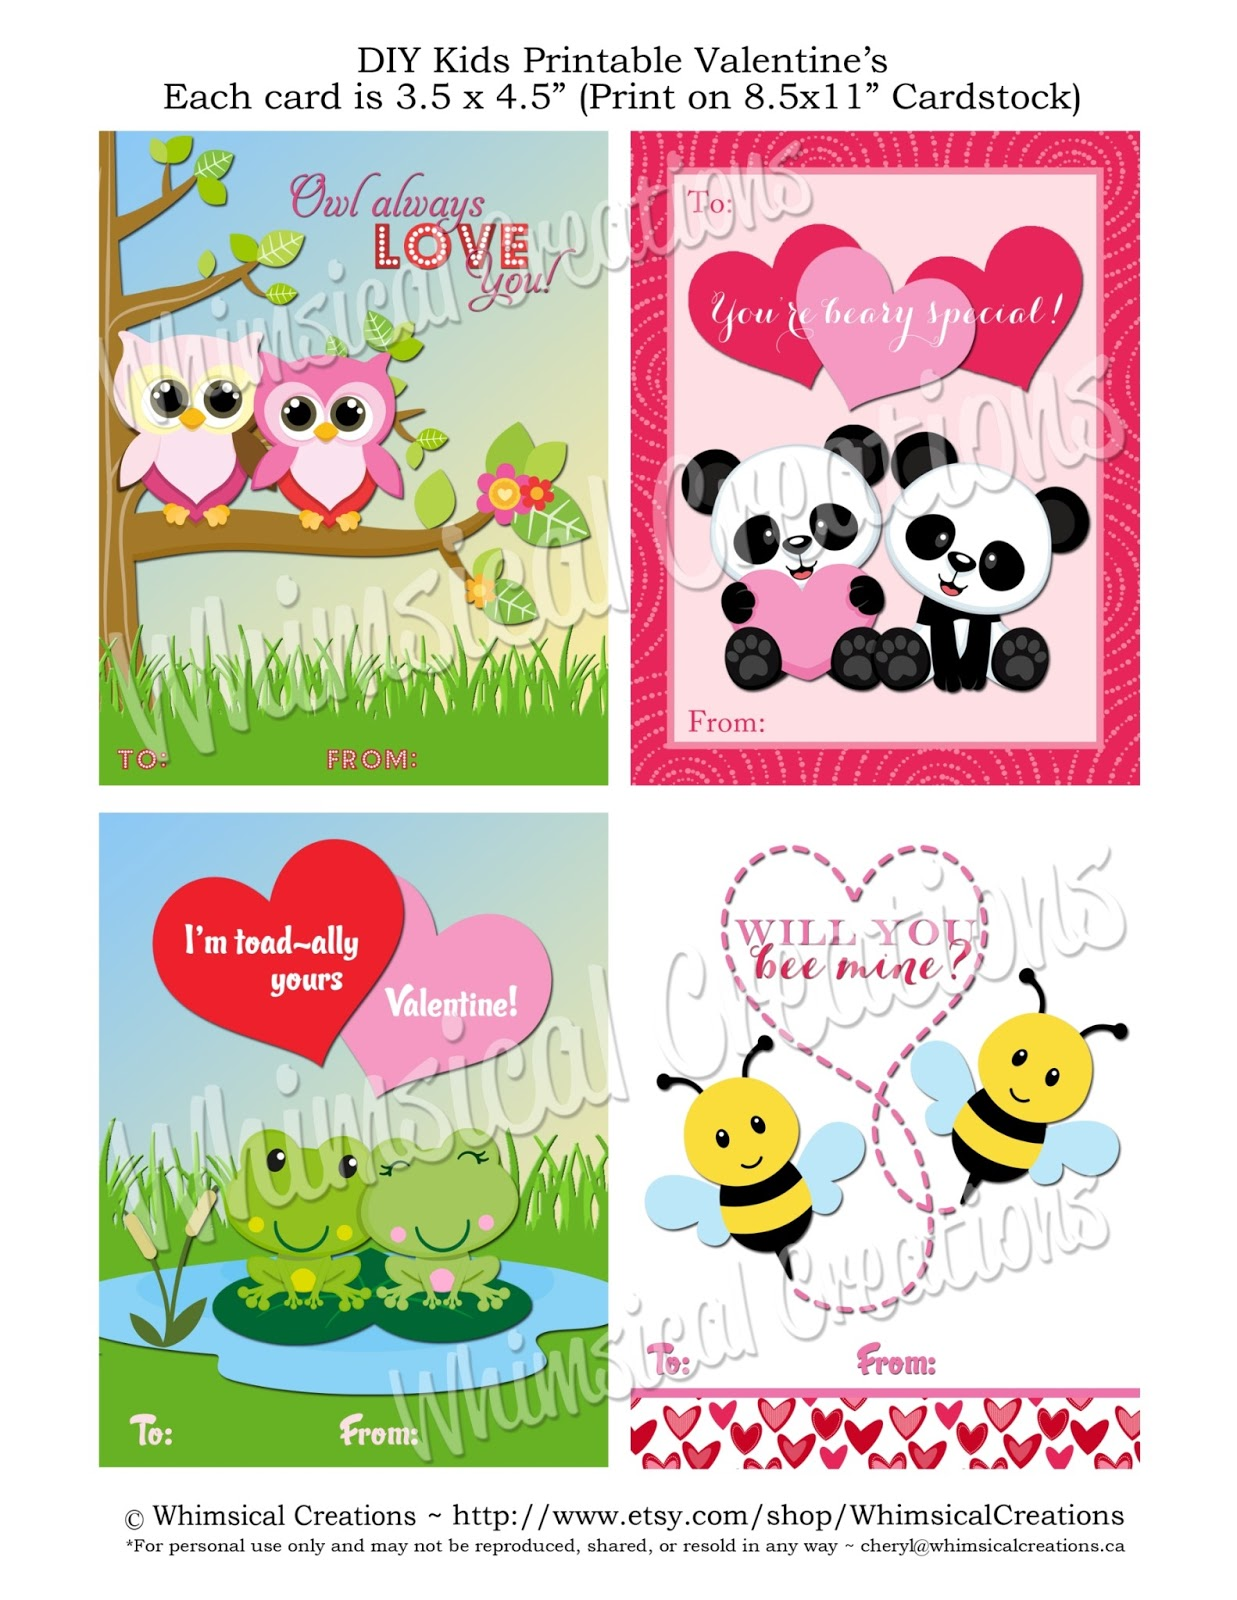 It's just a photo of Comprehensive Printable Valentine Cards for Kids